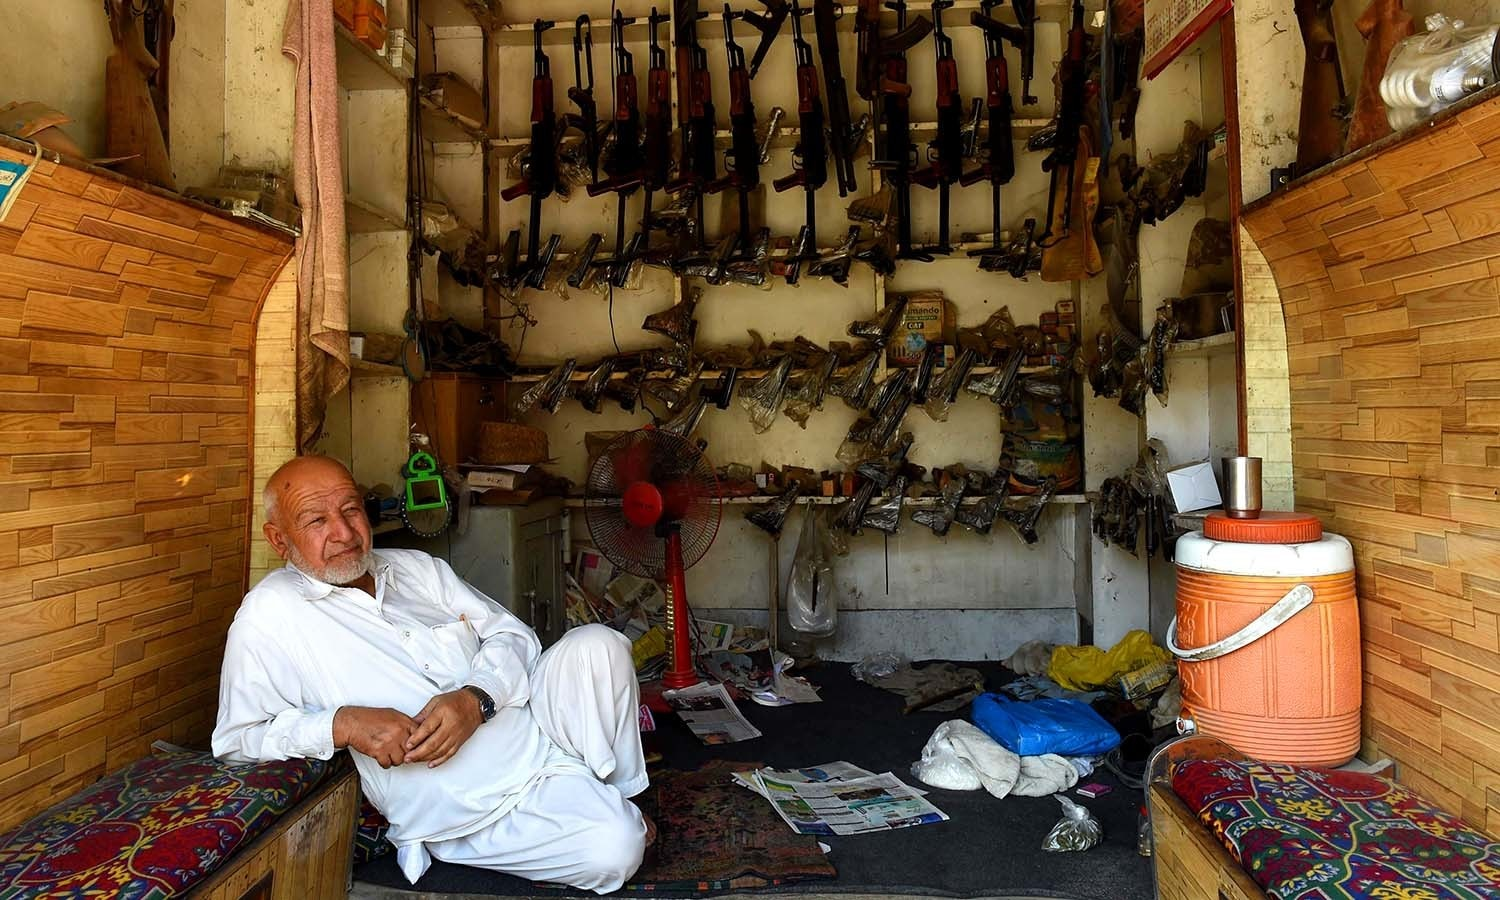 An arms seller waits for customers at his shop. ─AFP